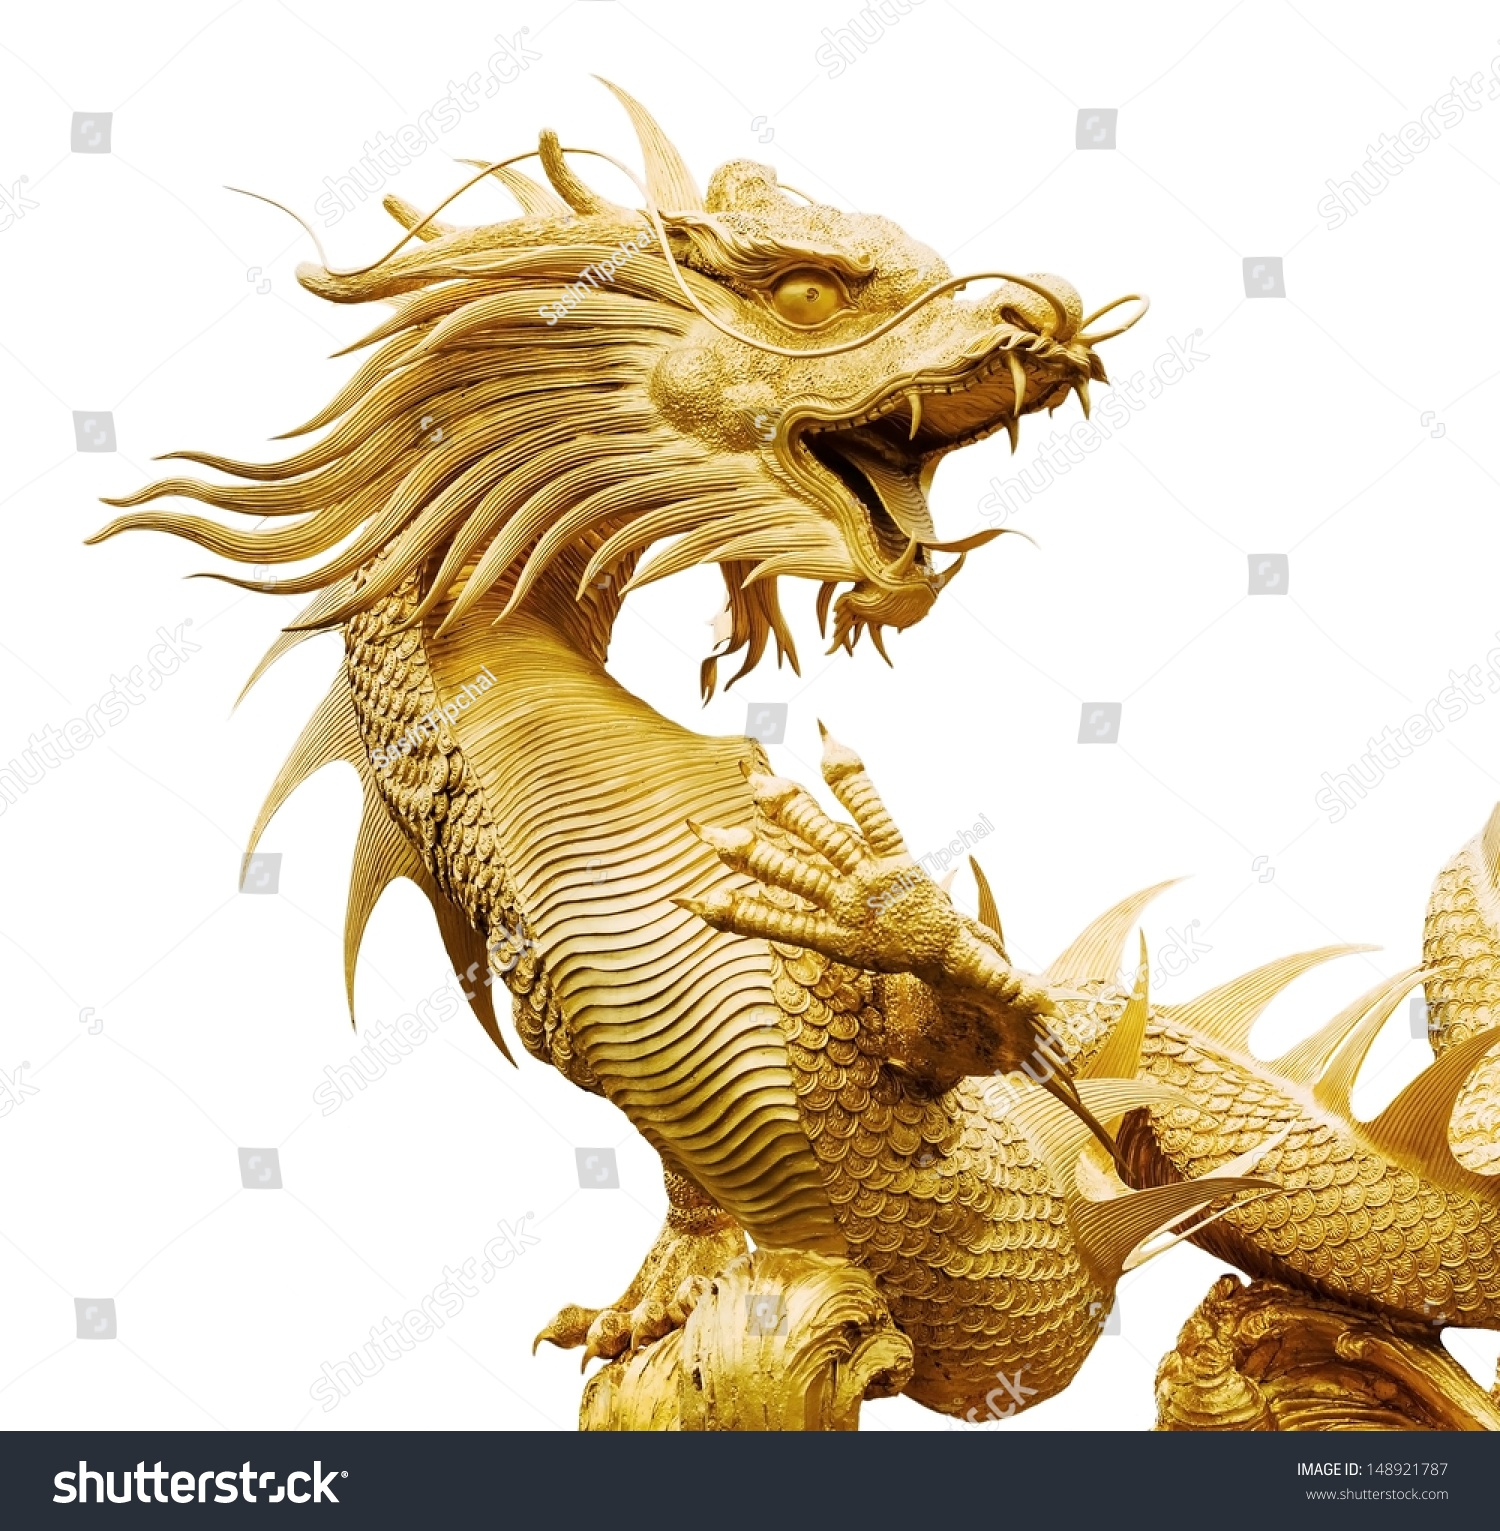 Giant Dragon Statue Giant Golden Chinese Dragon On Isolate Stock Photo